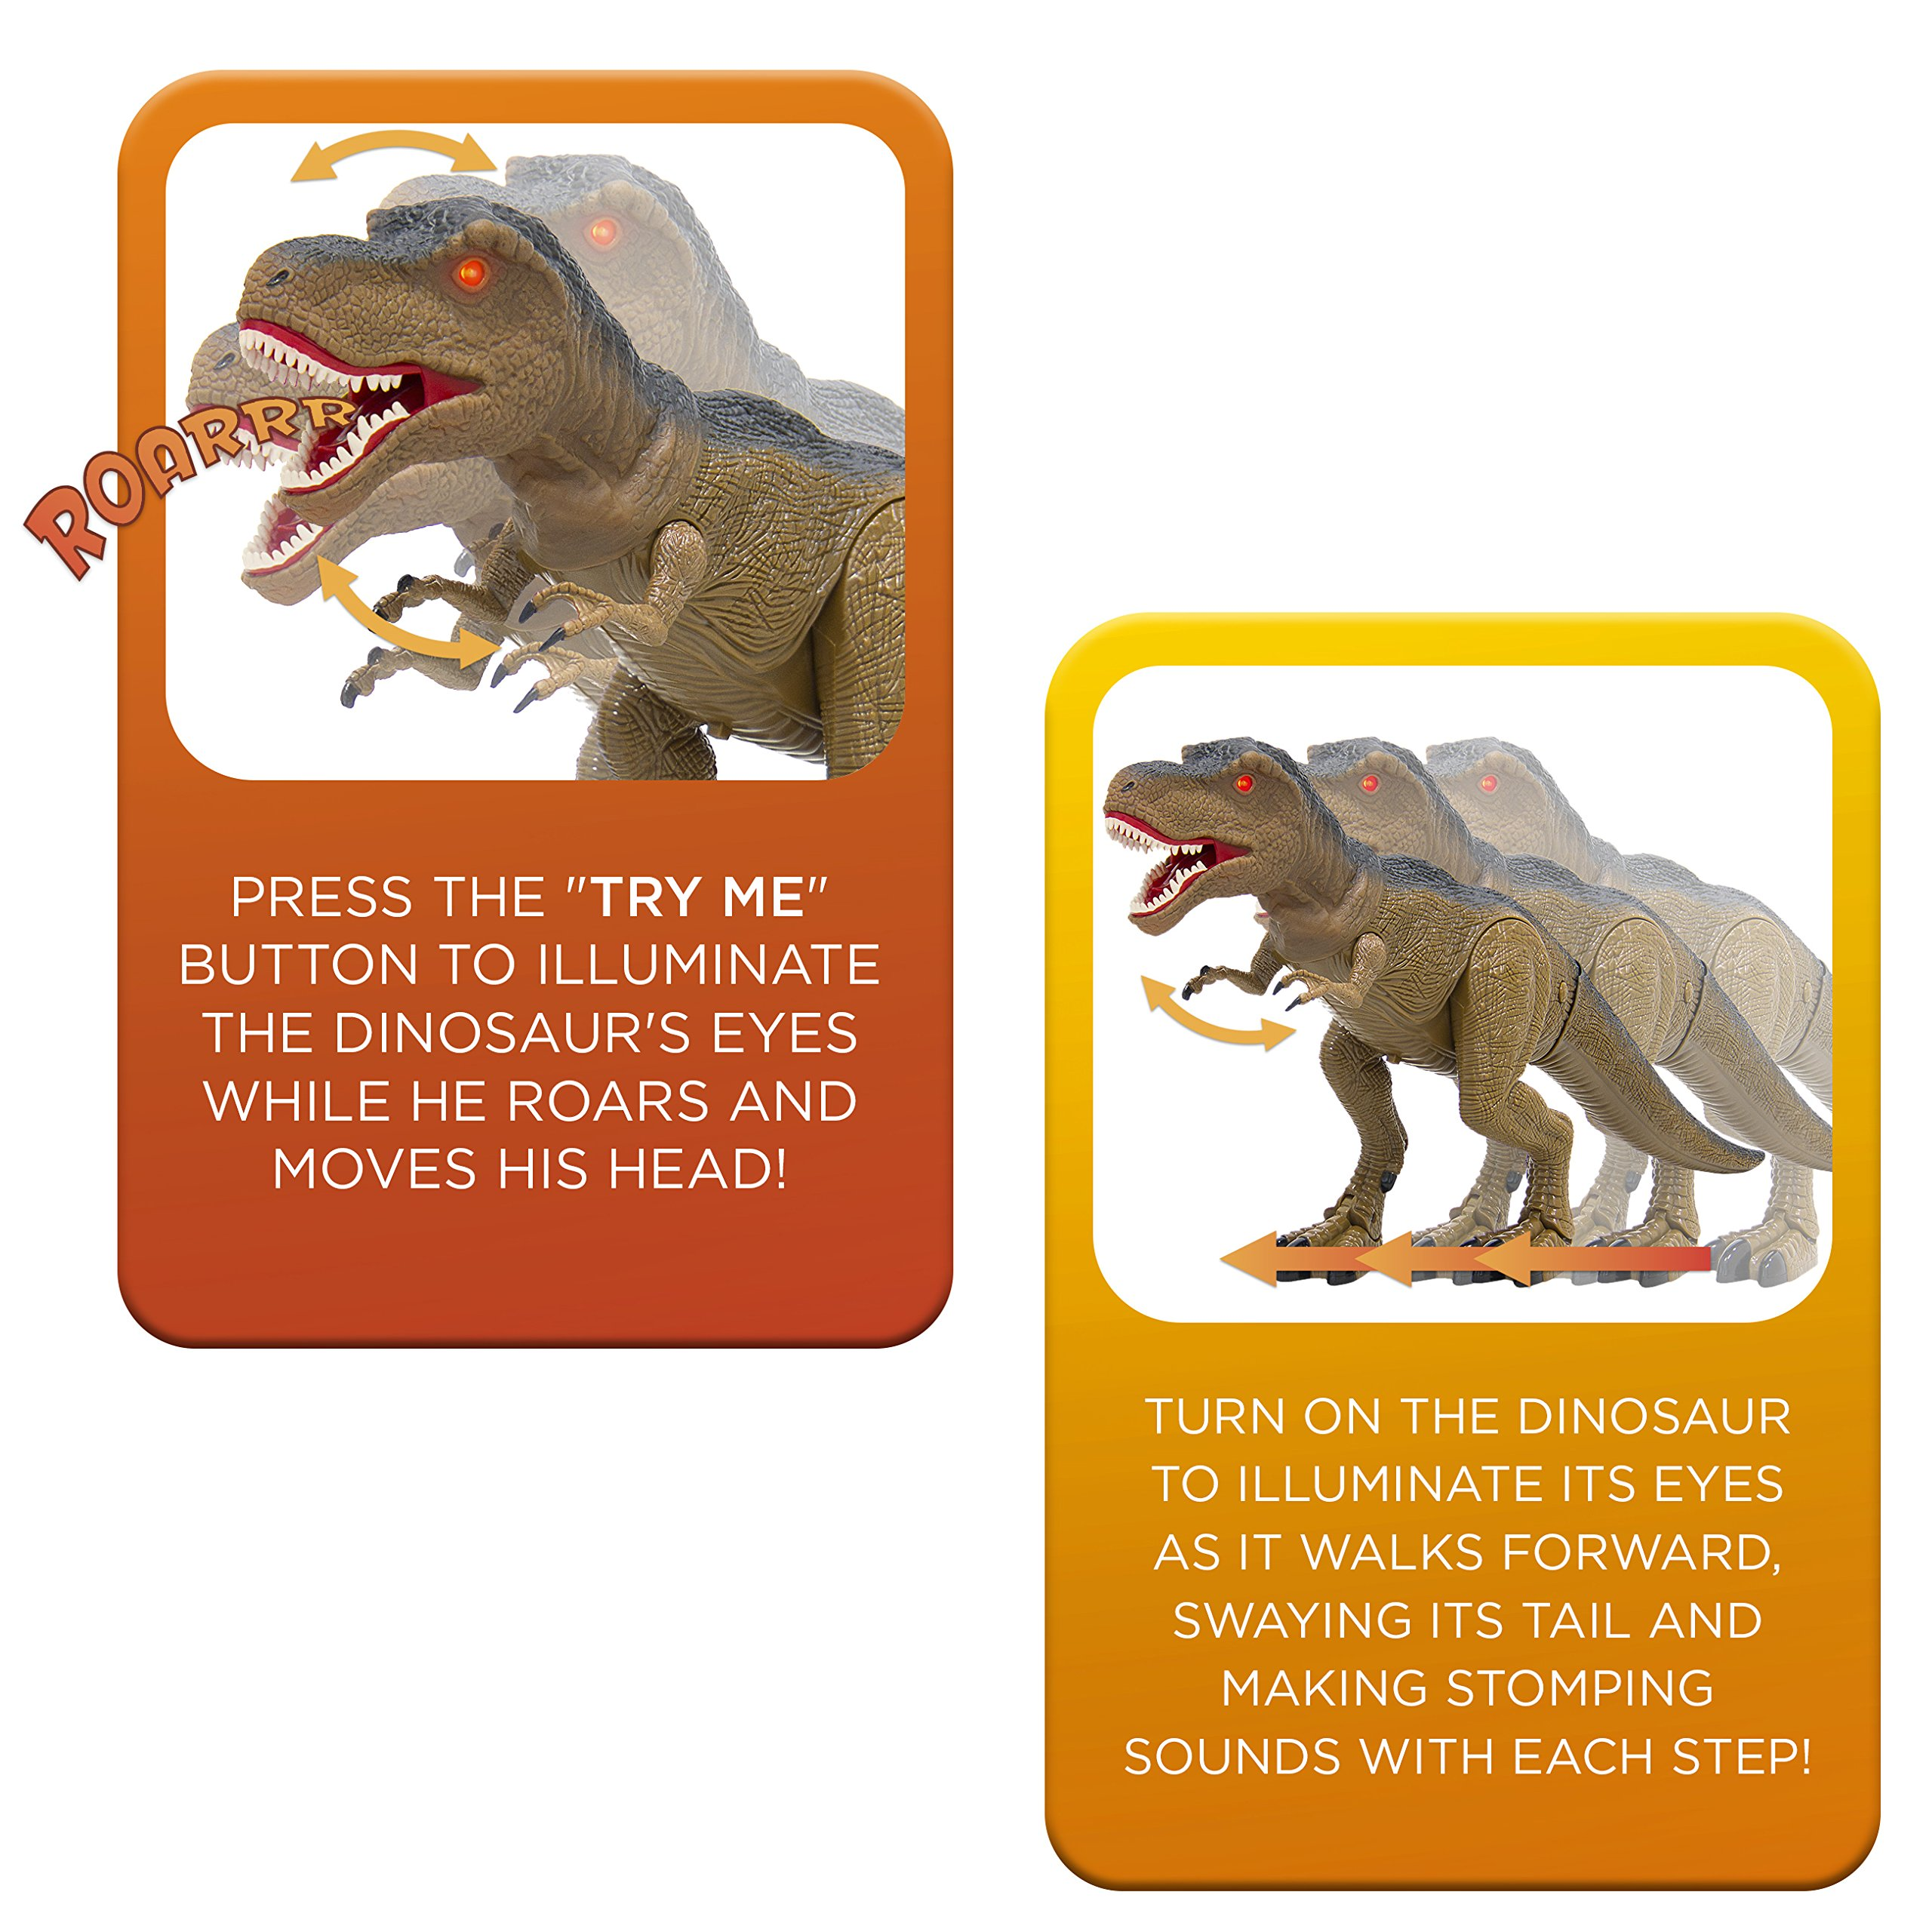 Best Choice Products 19in Kids Walking Remote Control Tyrannosaurus Rex Dinosaur RC Toy w/ Light-Up Eyes, Sounds by Best Choice Products (Image #4)